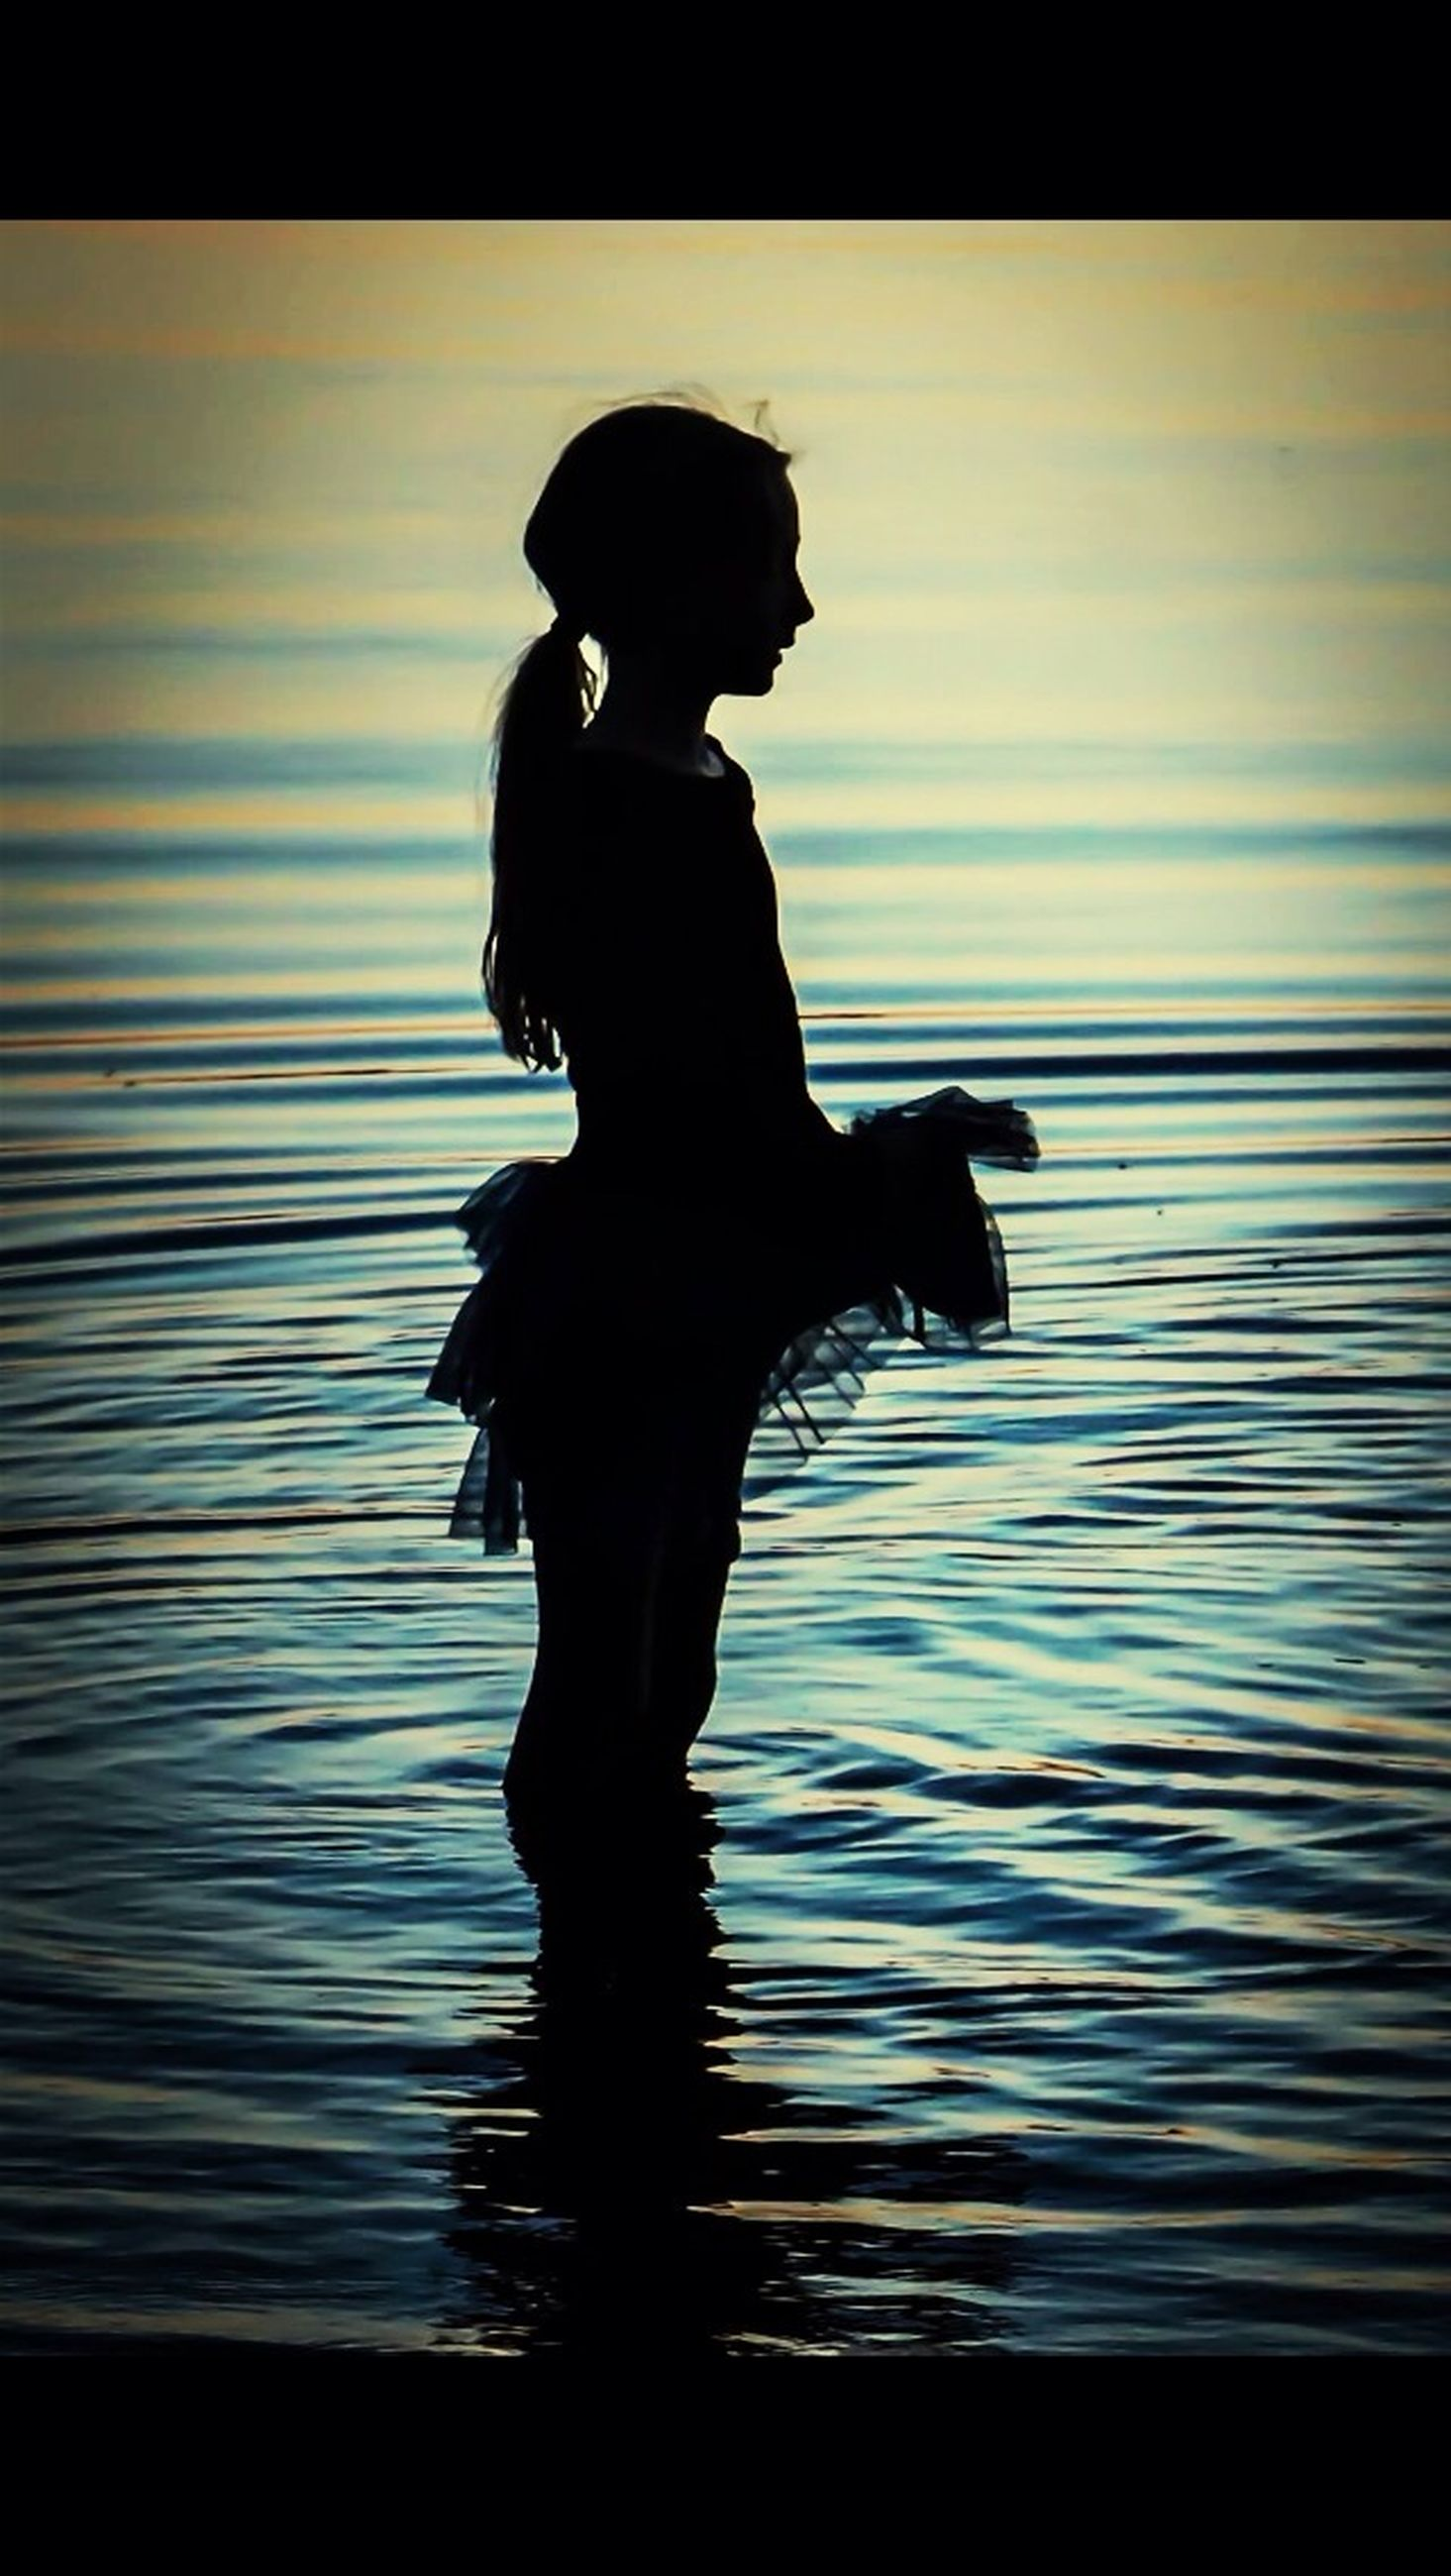 silhouette, water, sunset, standing, sea, full length, lifestyles, tranquility, leisure activity, reflection, sky, tranquil scene, beauty in nature, nature, outline, scenics, horizon over water, idyllic